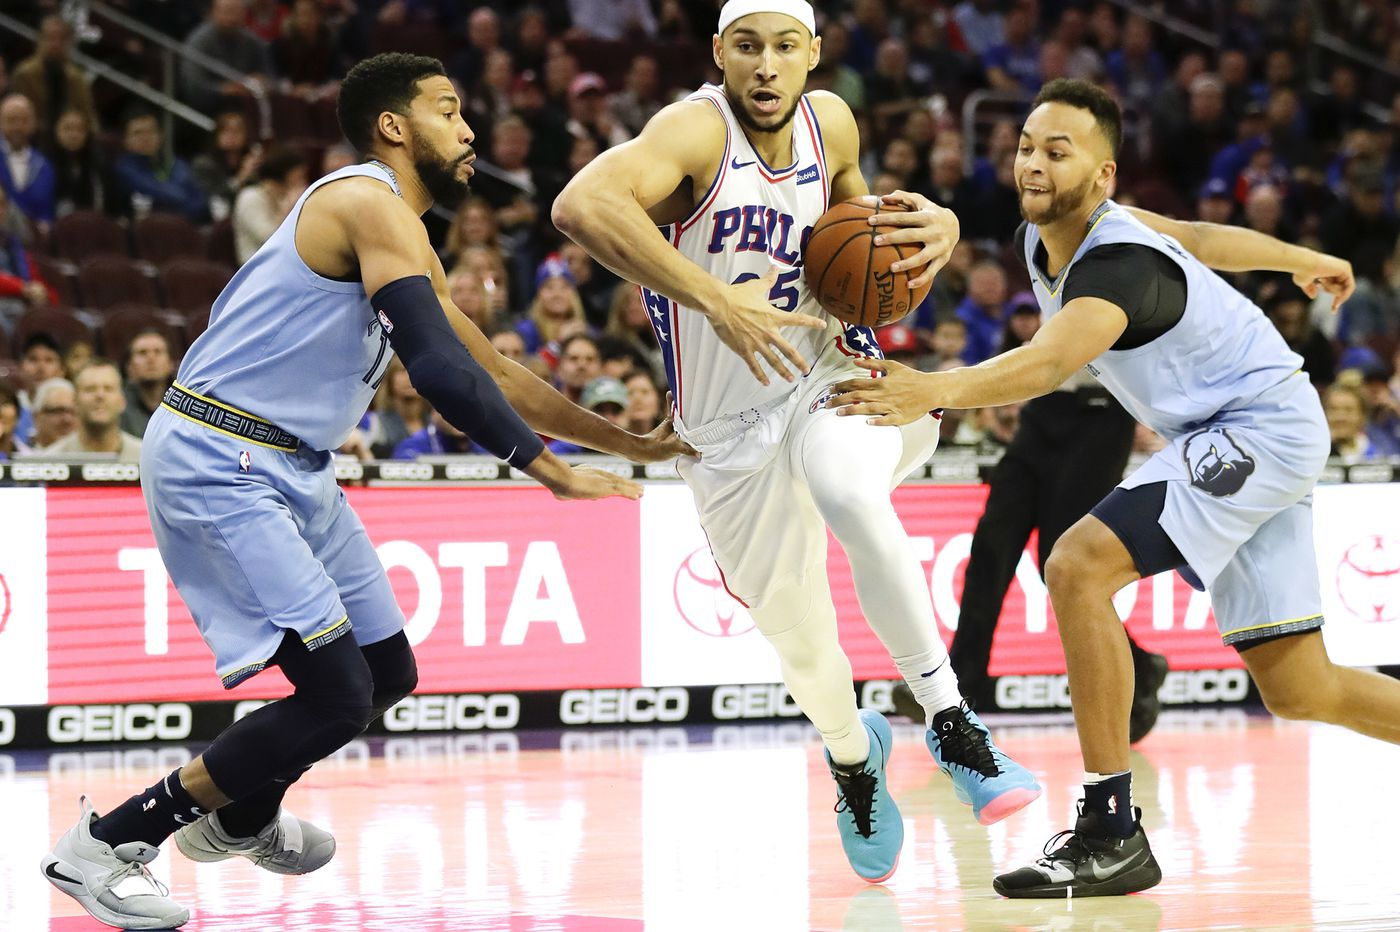 Ben Simmons continues to be aggressive in first quarters of Sixers games